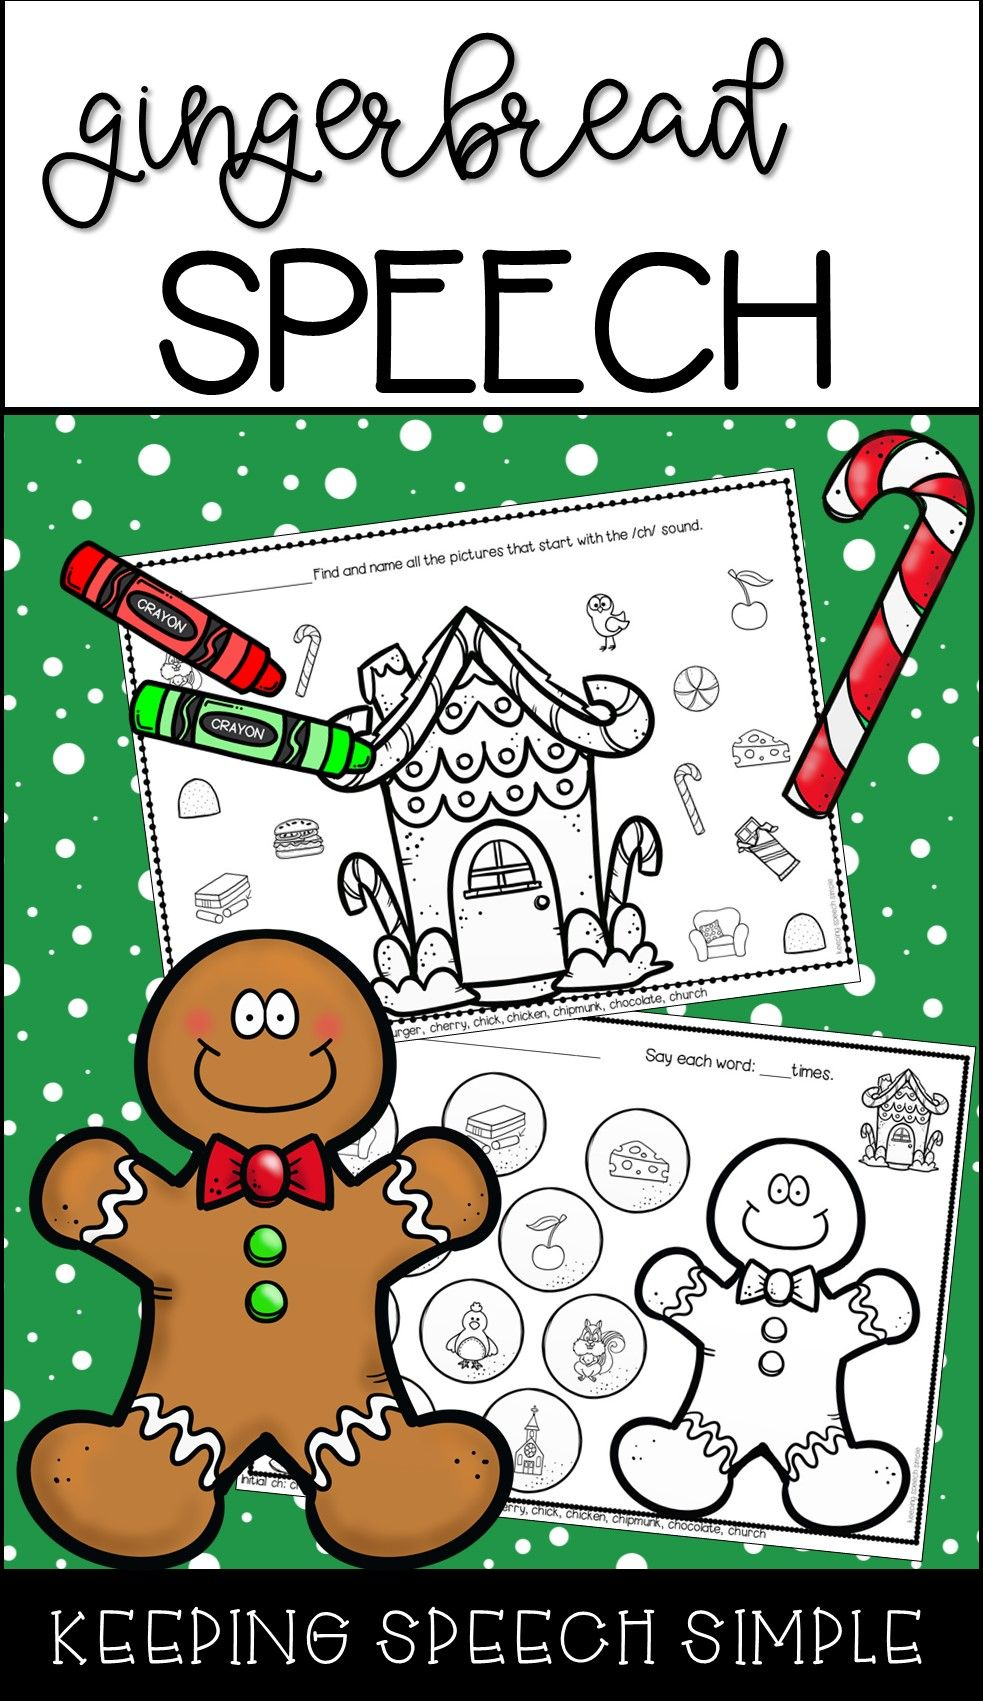 Gingerbread Speech No Prep Worksheets For Speech Therapy Christmas Speech Therapy Winter Speech Therapy Speech Therapy Activities [ 1701 x 983 Pixel ]